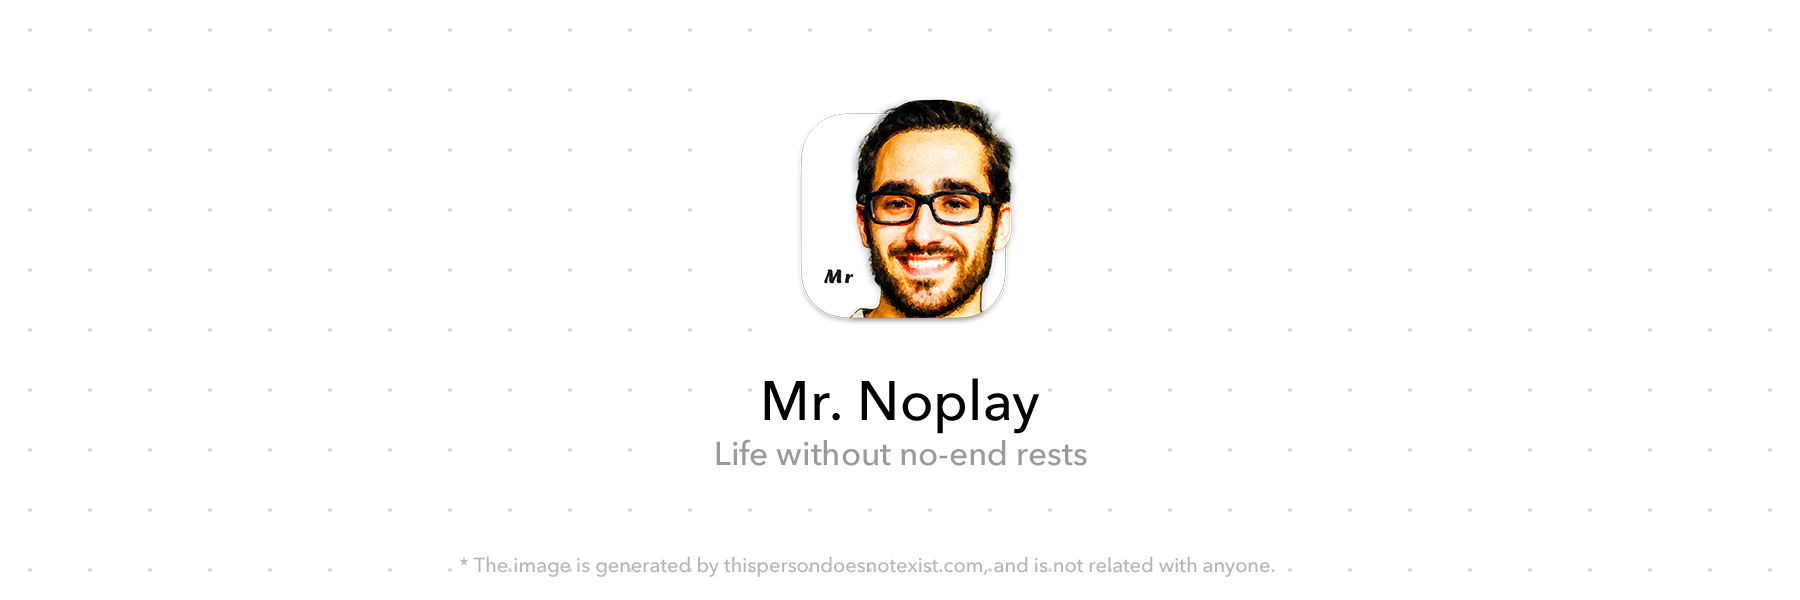 Mr Noplay Repo Banner